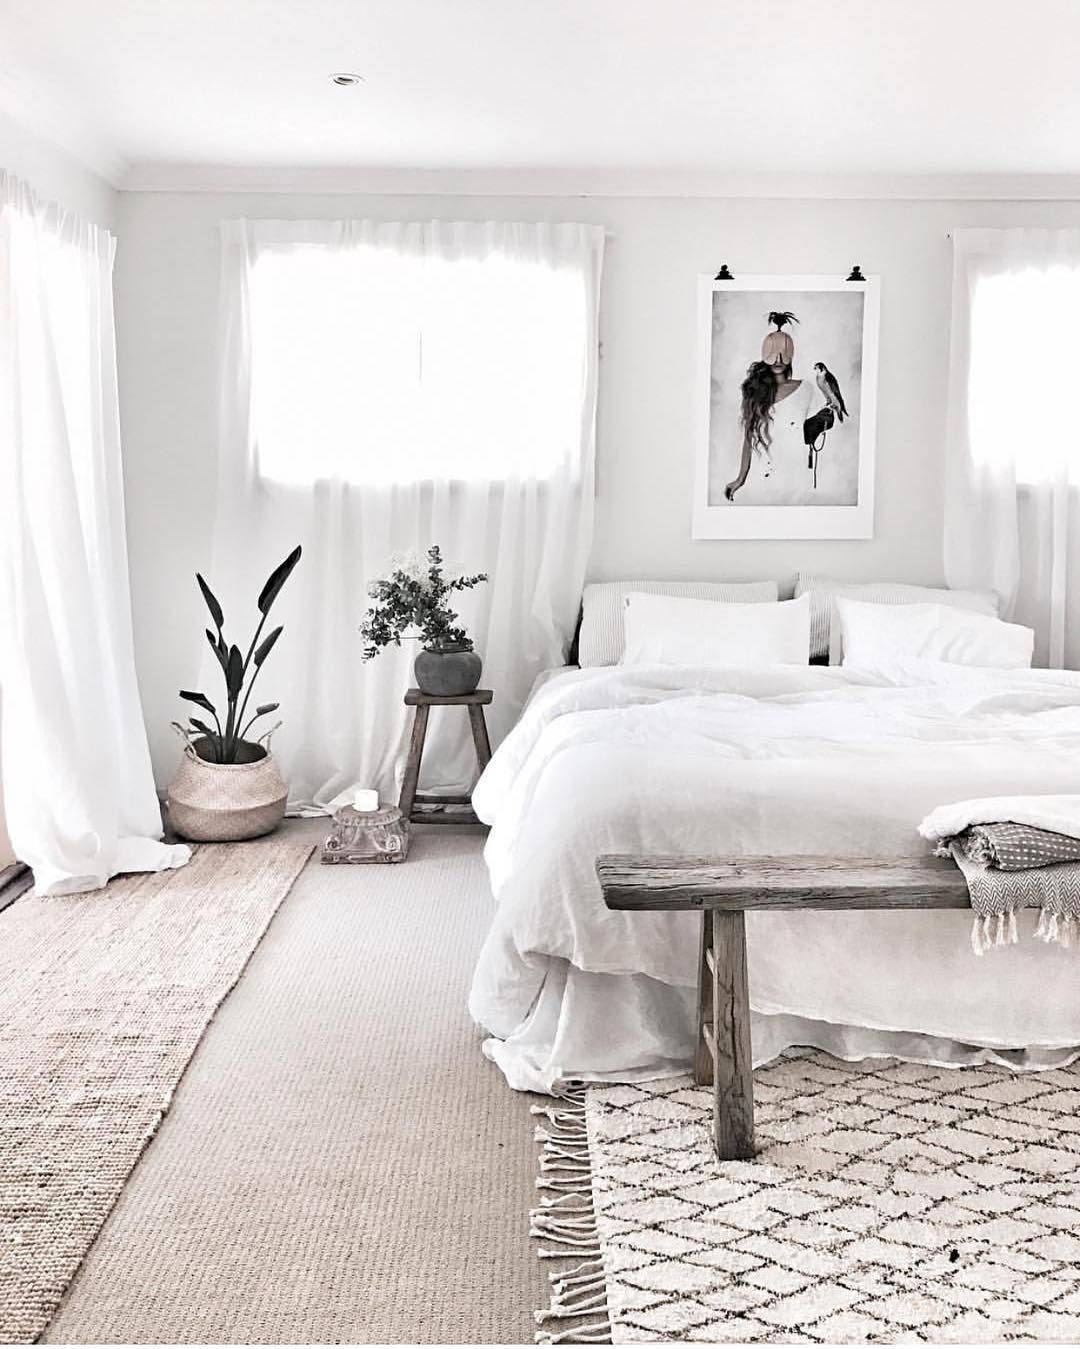 Monochrome White Bedroom With Art Print Above Bed